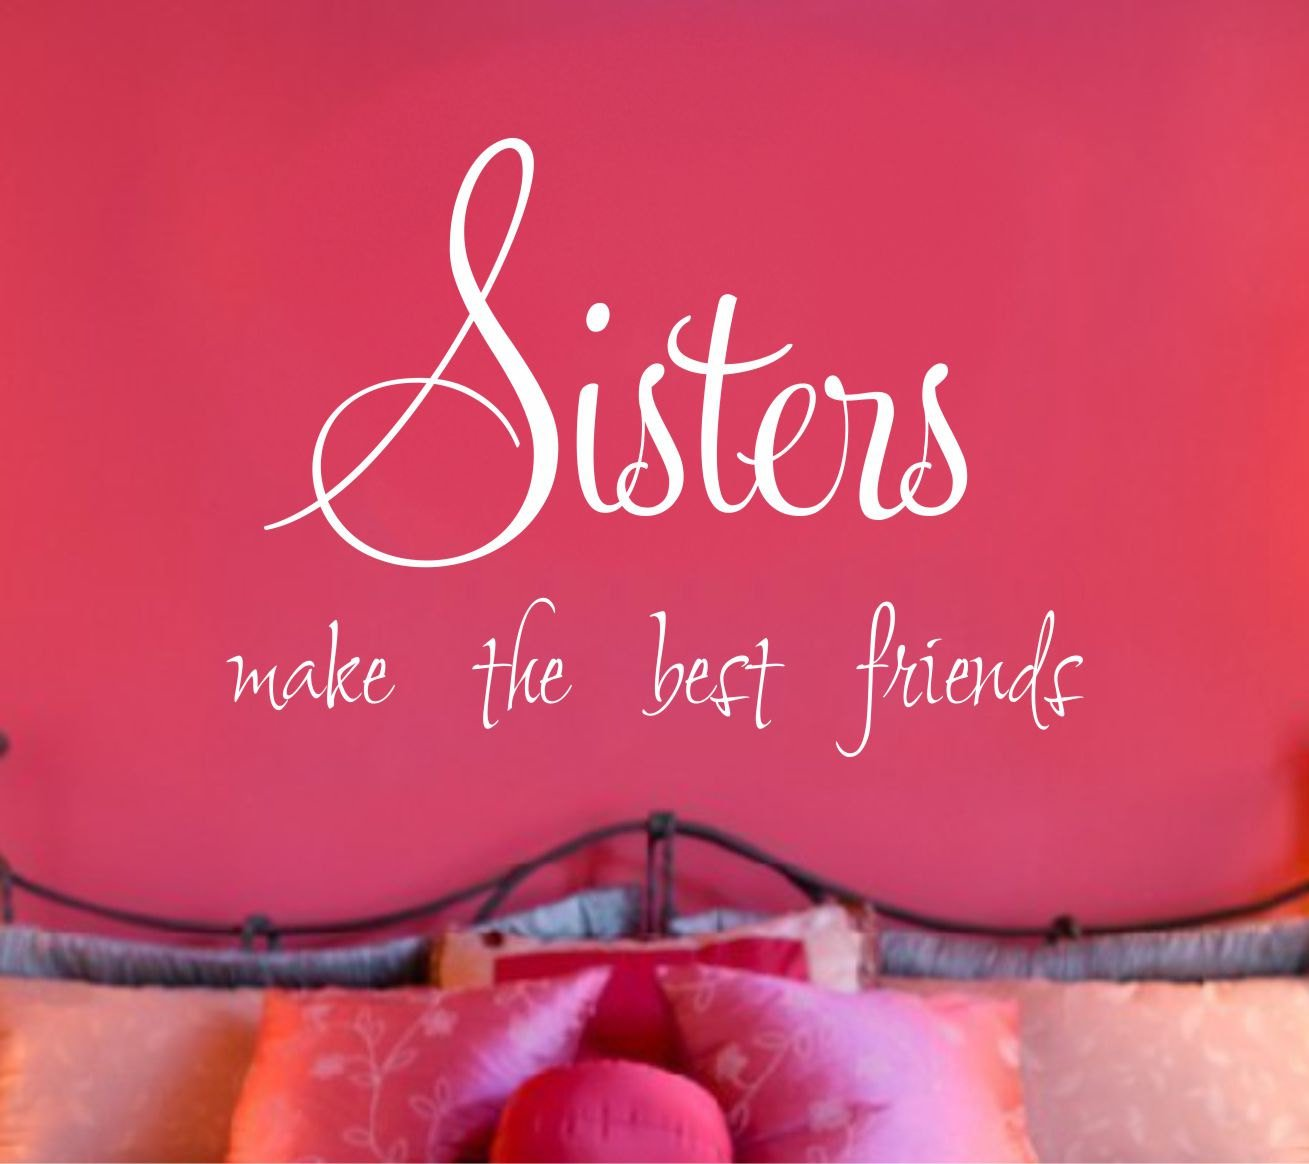 Messed Up Best Friend I M Sorry Quotes: Facebook Sister Wall Quotes. QuotesGram